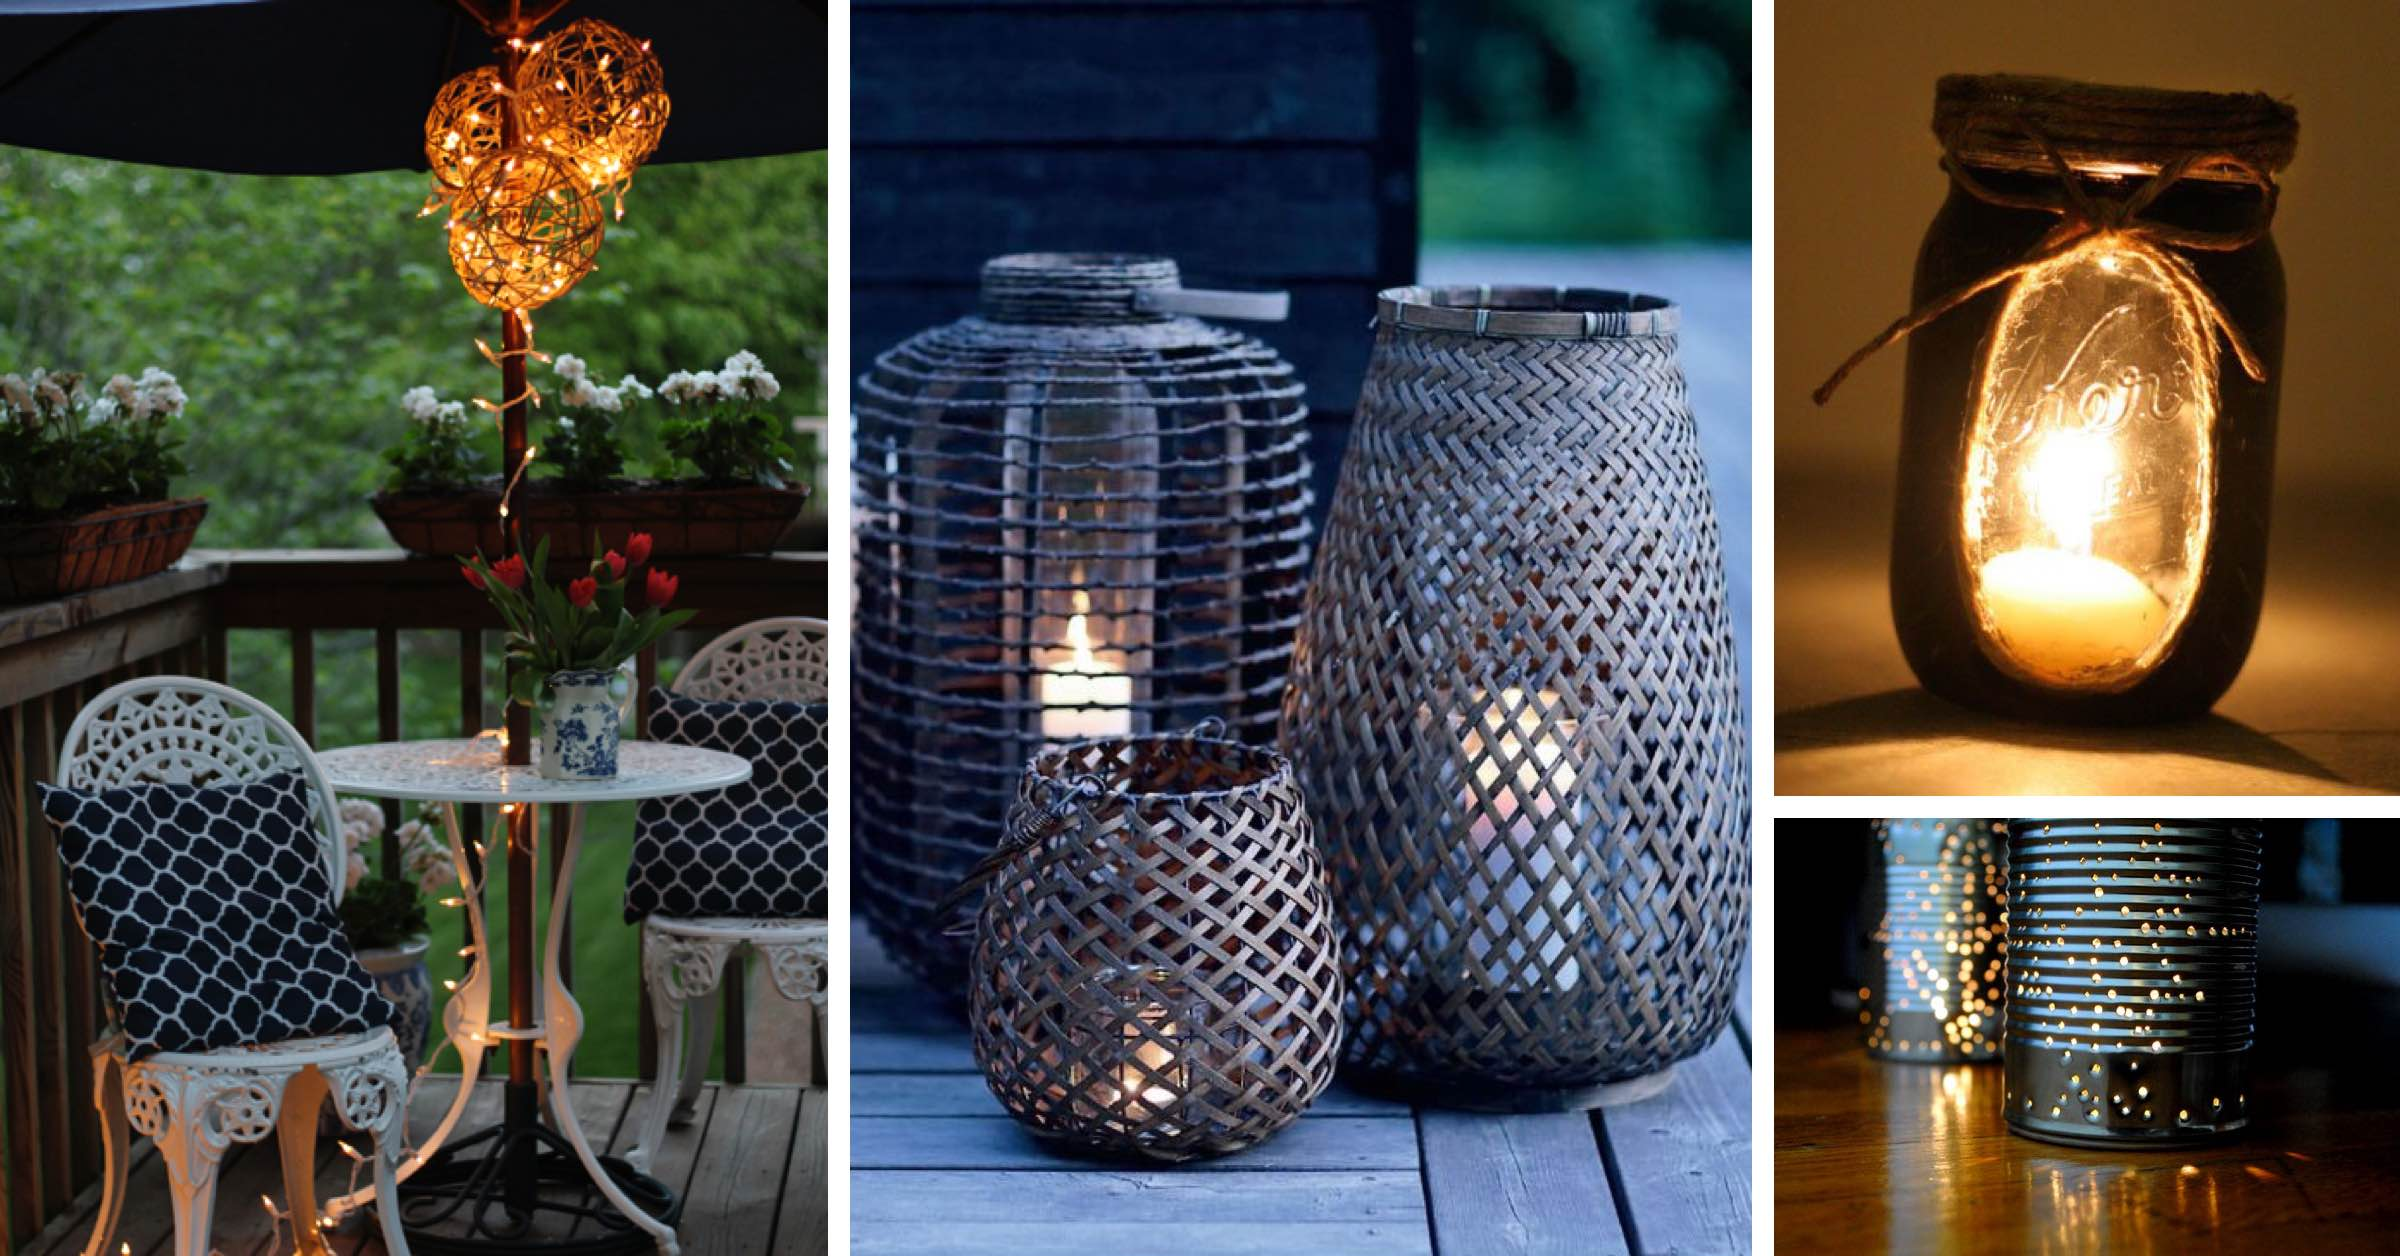 19 Spectacular Outdoor Lantern Ideas Sending More Light Across Your Space